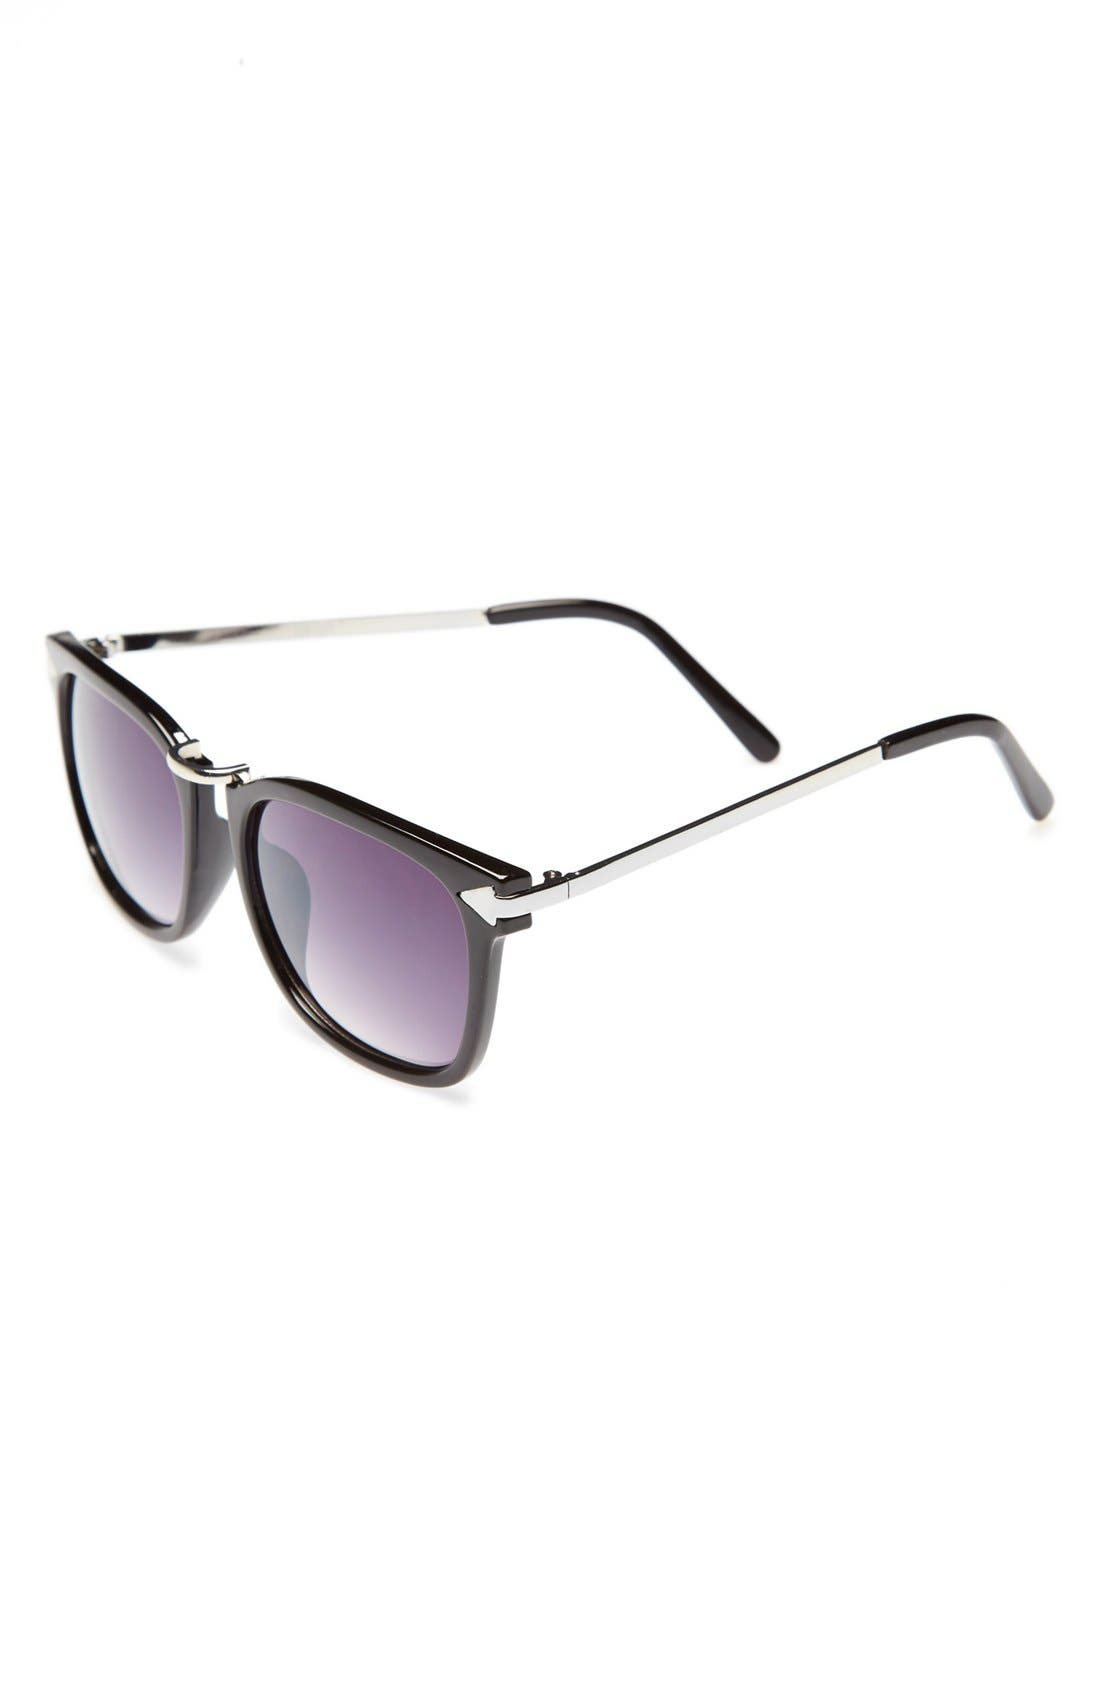 Alternate Image 1 Selected - BP. Metal Bridge Sunglasses (Juniors)